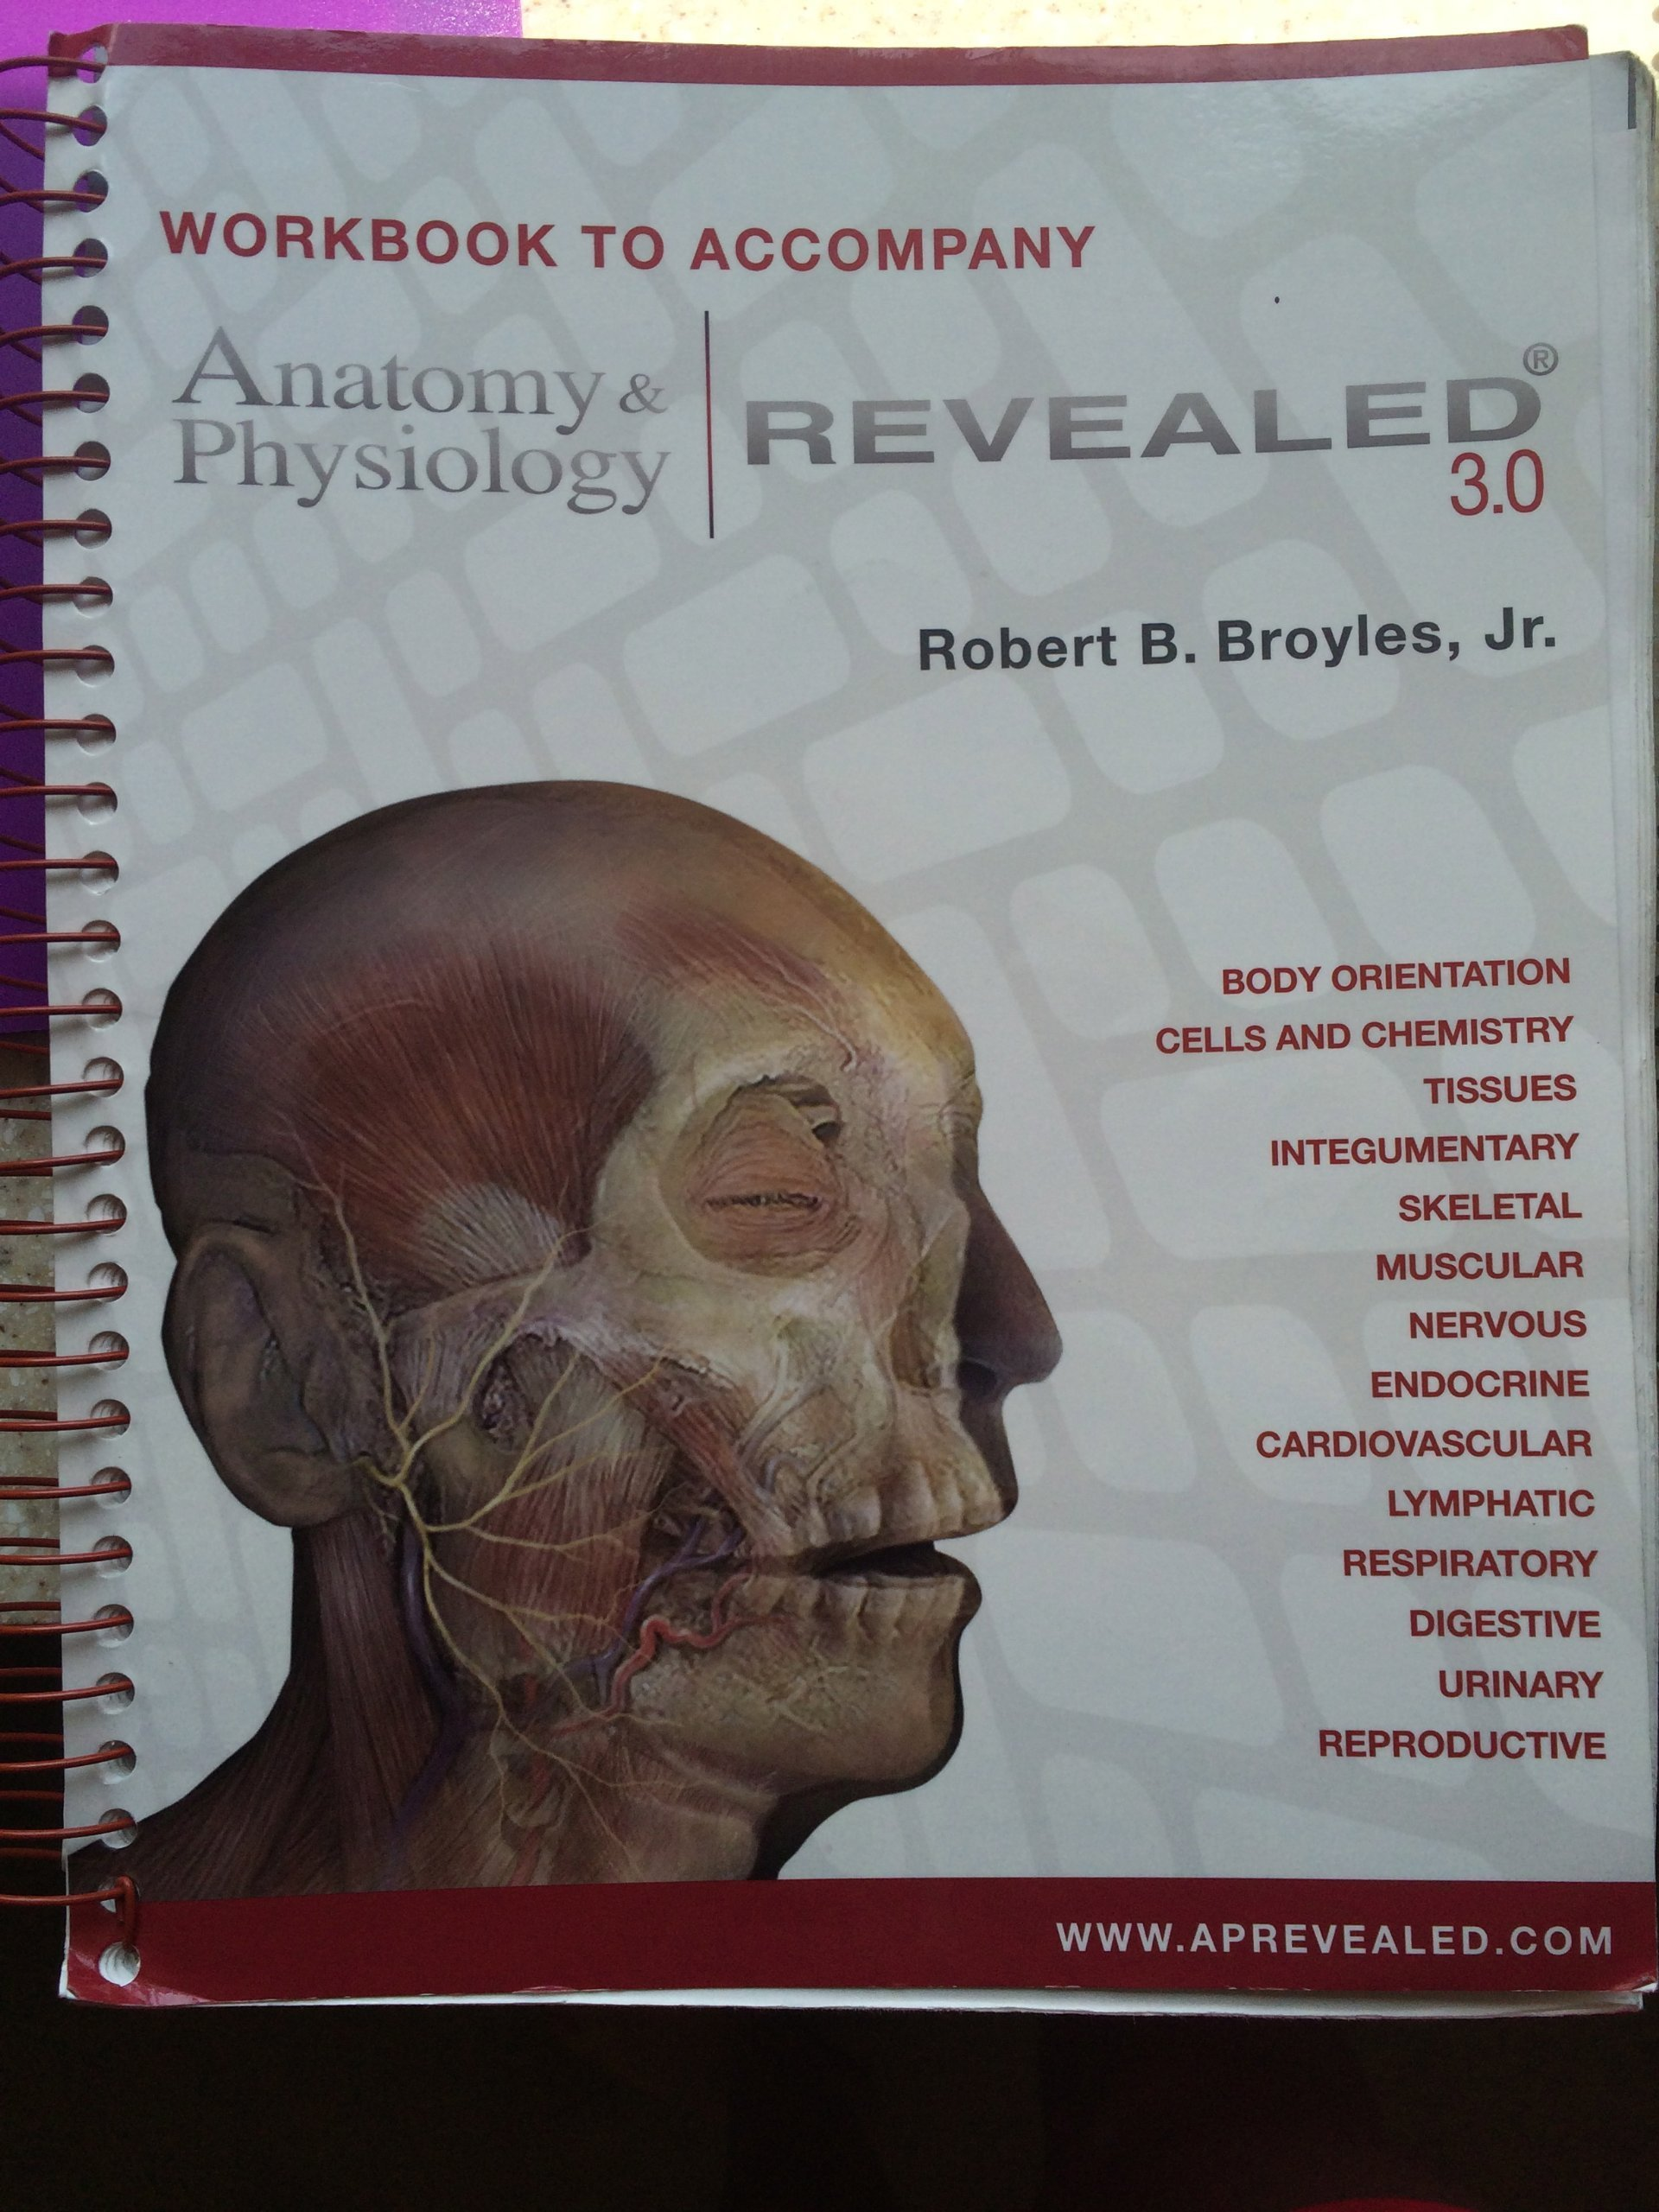 Workbook To Accompany Anatomy Physiology Revealed 30 Aa